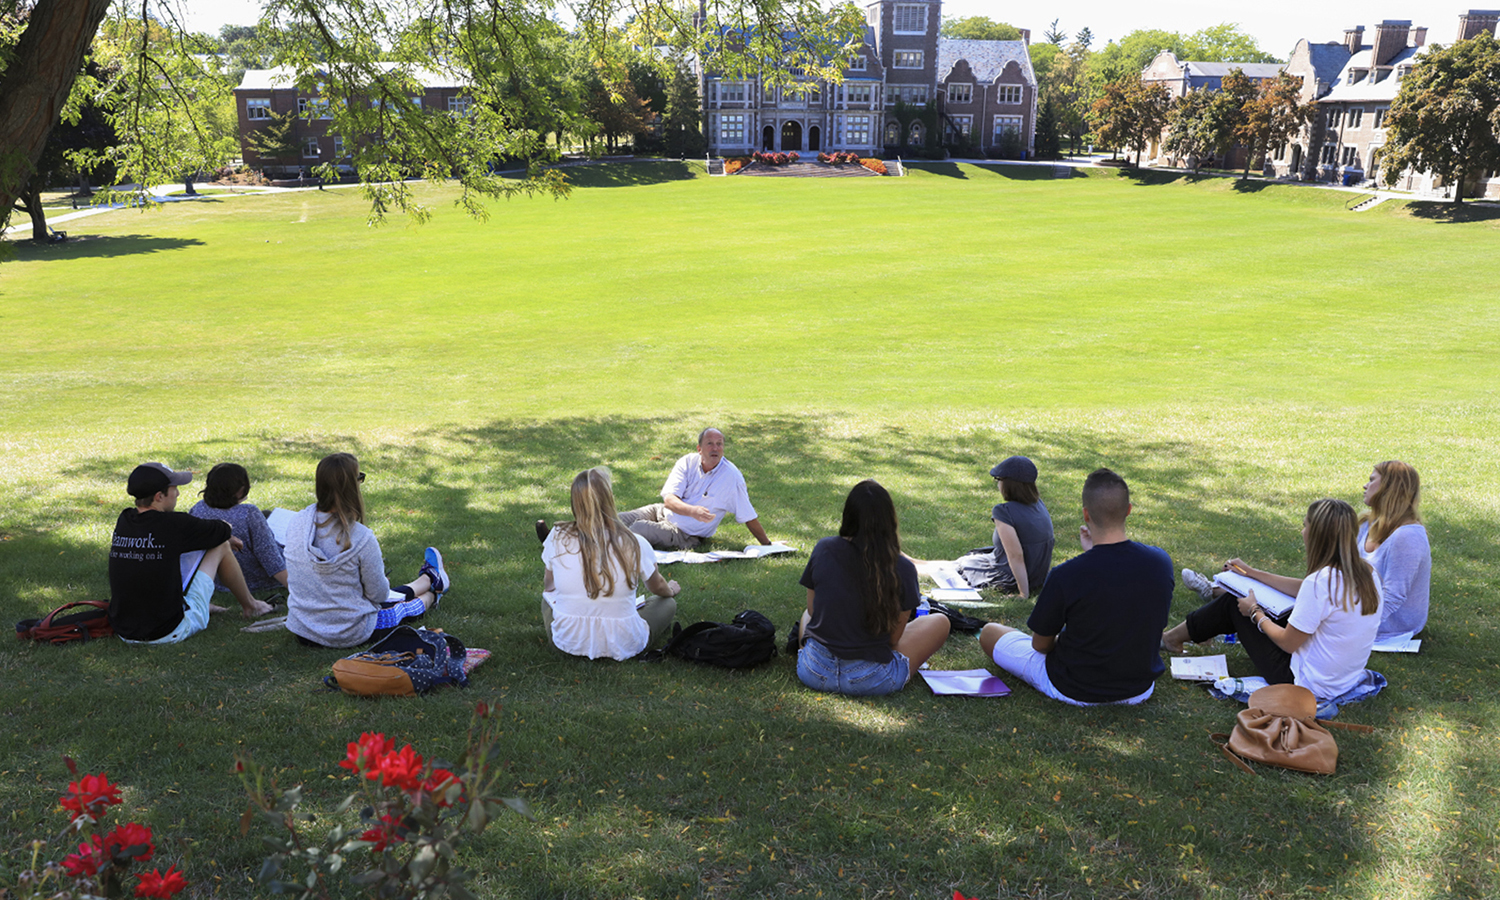 Professor of Education Charlie Temple brings his âComparative and International Educationâ class outside for a discussion of Amanda Ripley's book, âThe Smartest Kids in the World: And How They Got That Way.â